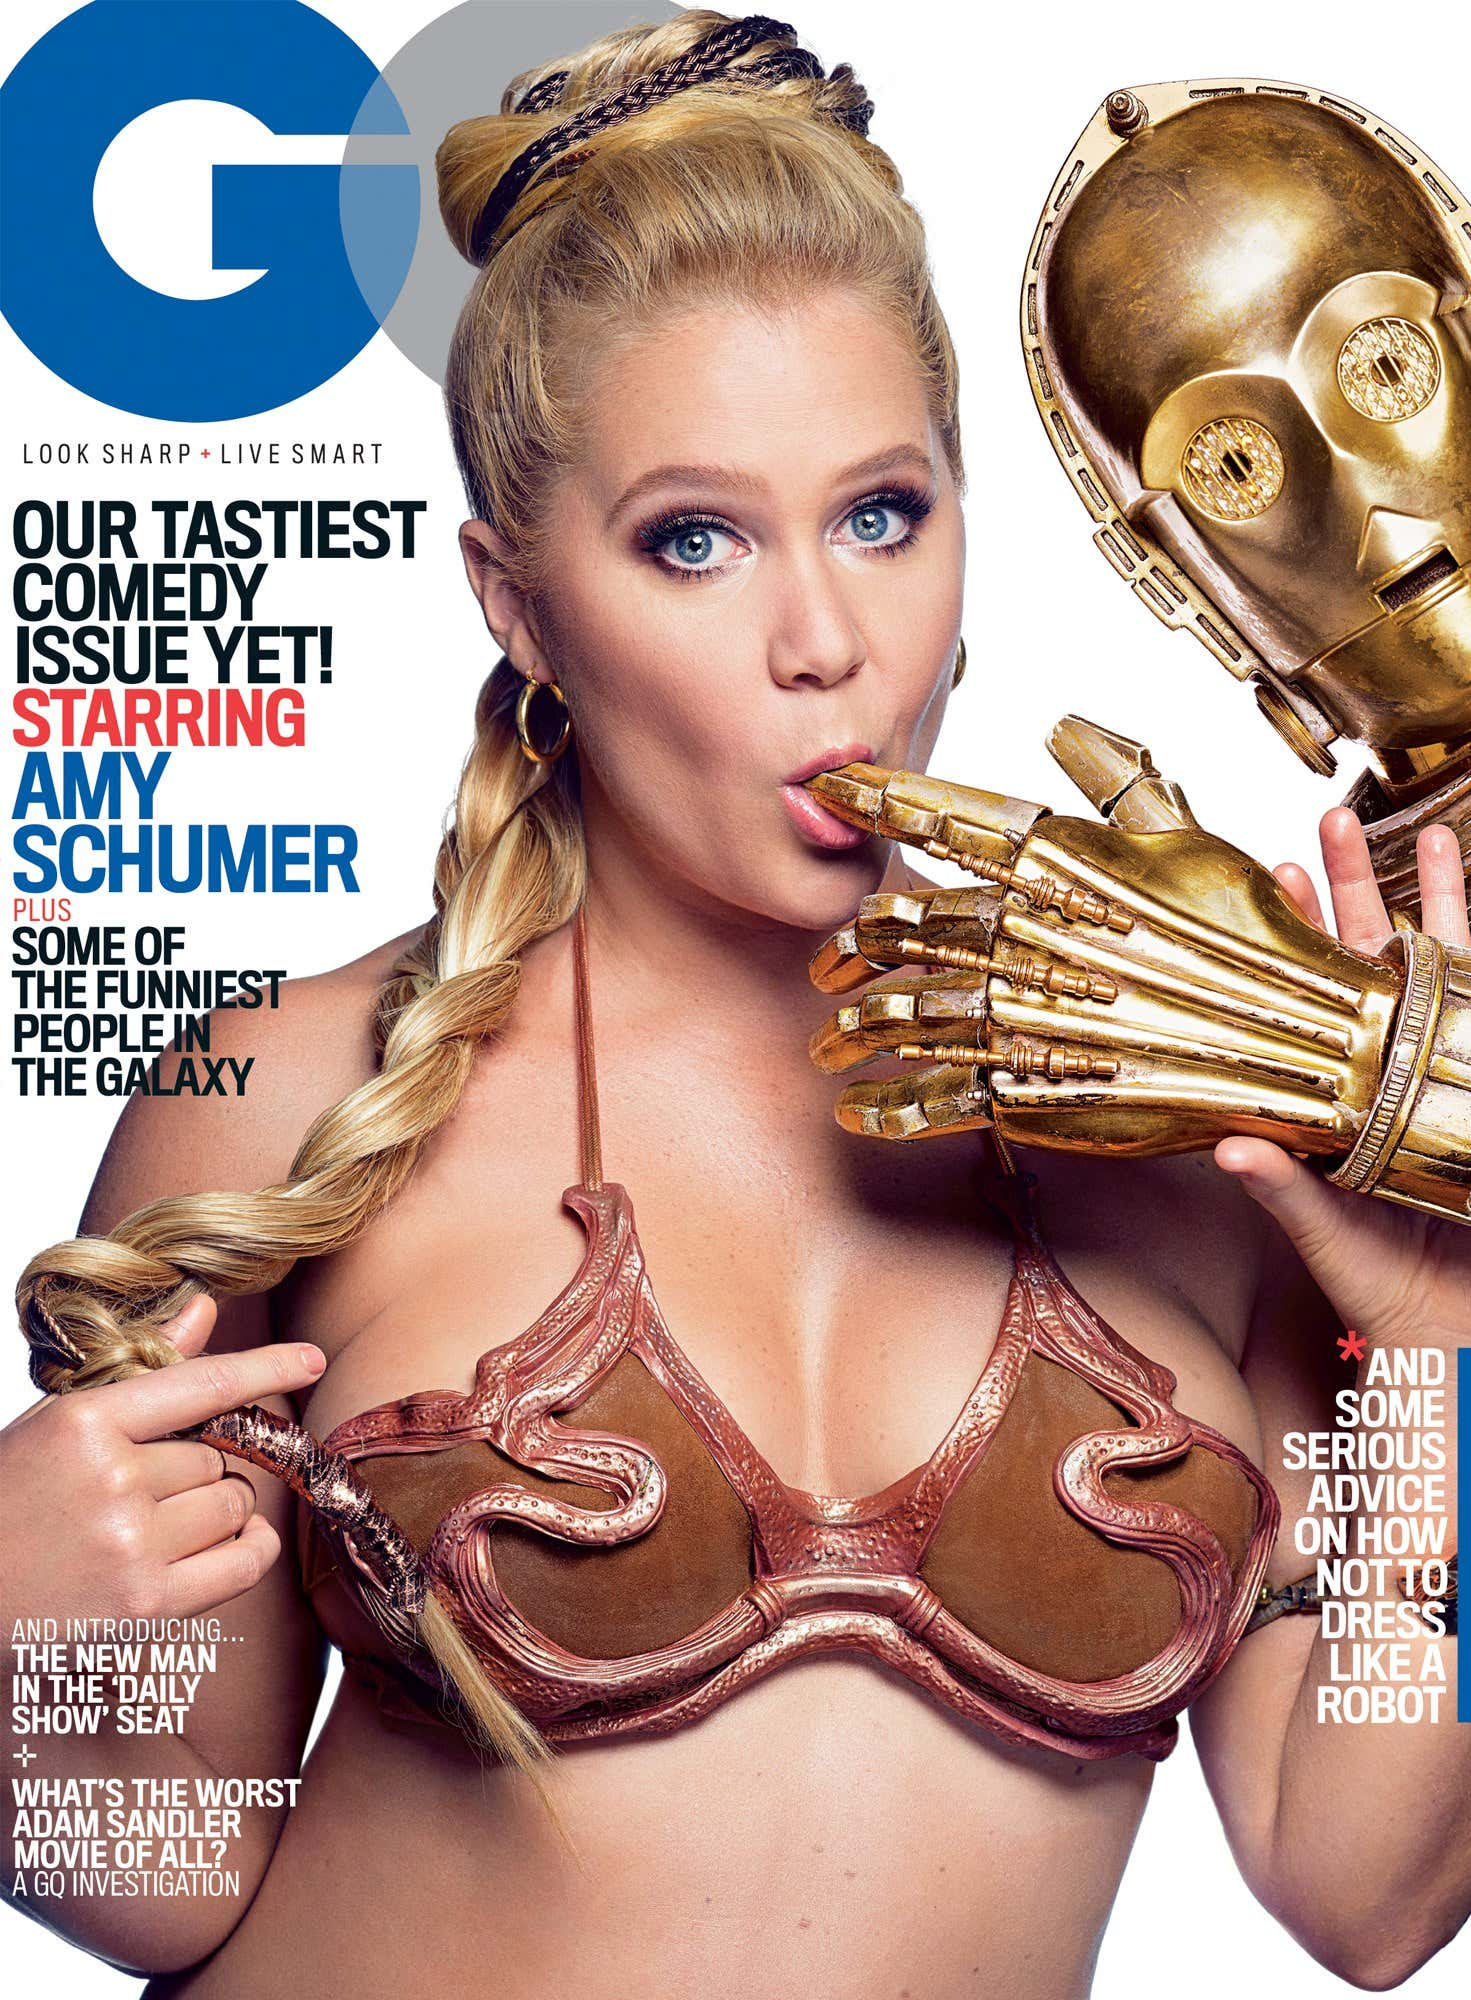 Amy Schumer Fucked amy schumer now has a podcast. breaking news: it's bad